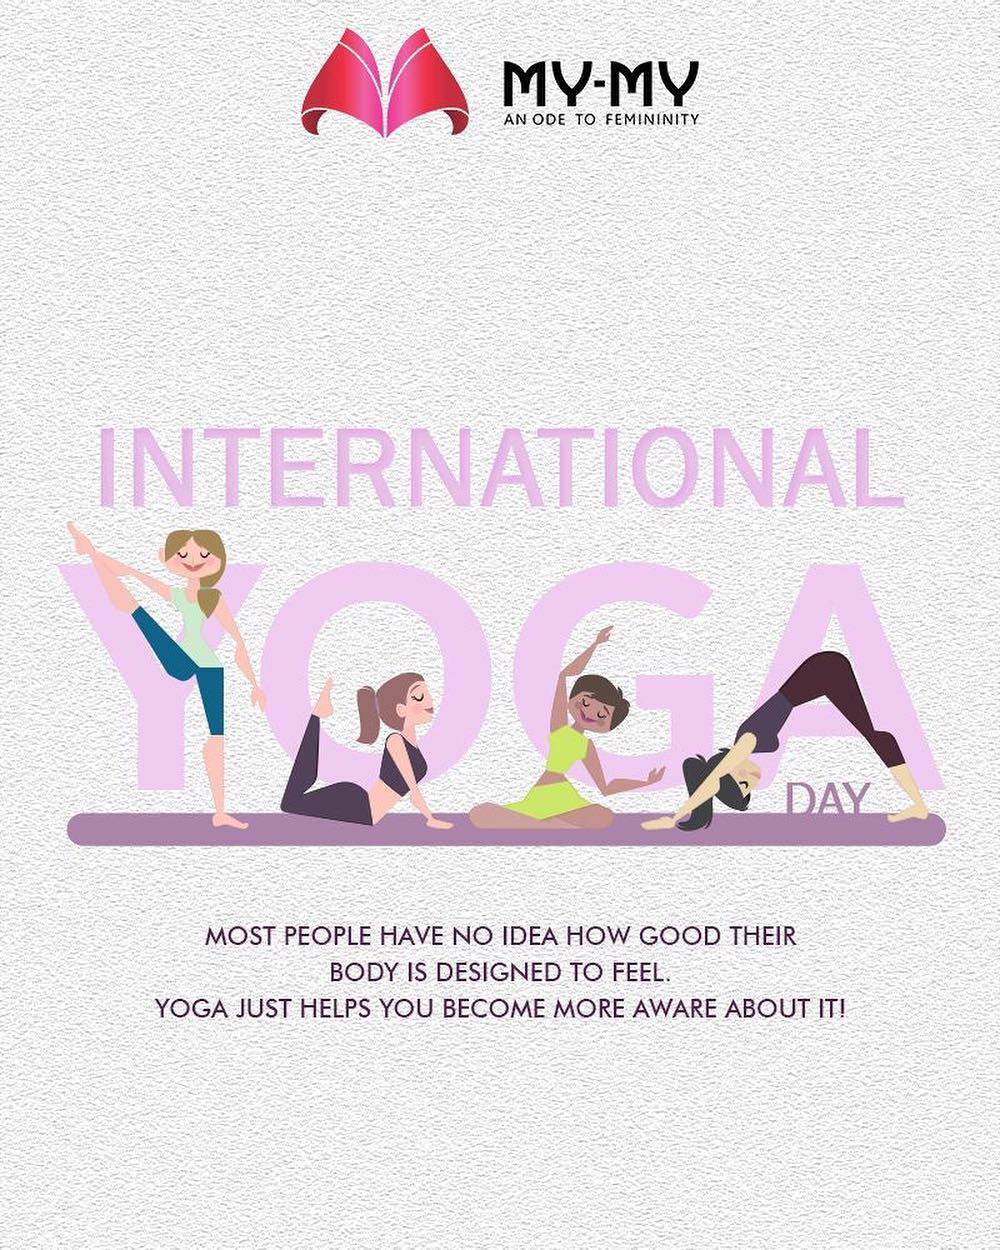 My-My,  Yoga!, YogaDay, YogaDay2018, InternationalYogaDay, MYMYAhmedabad, FemaleFashion